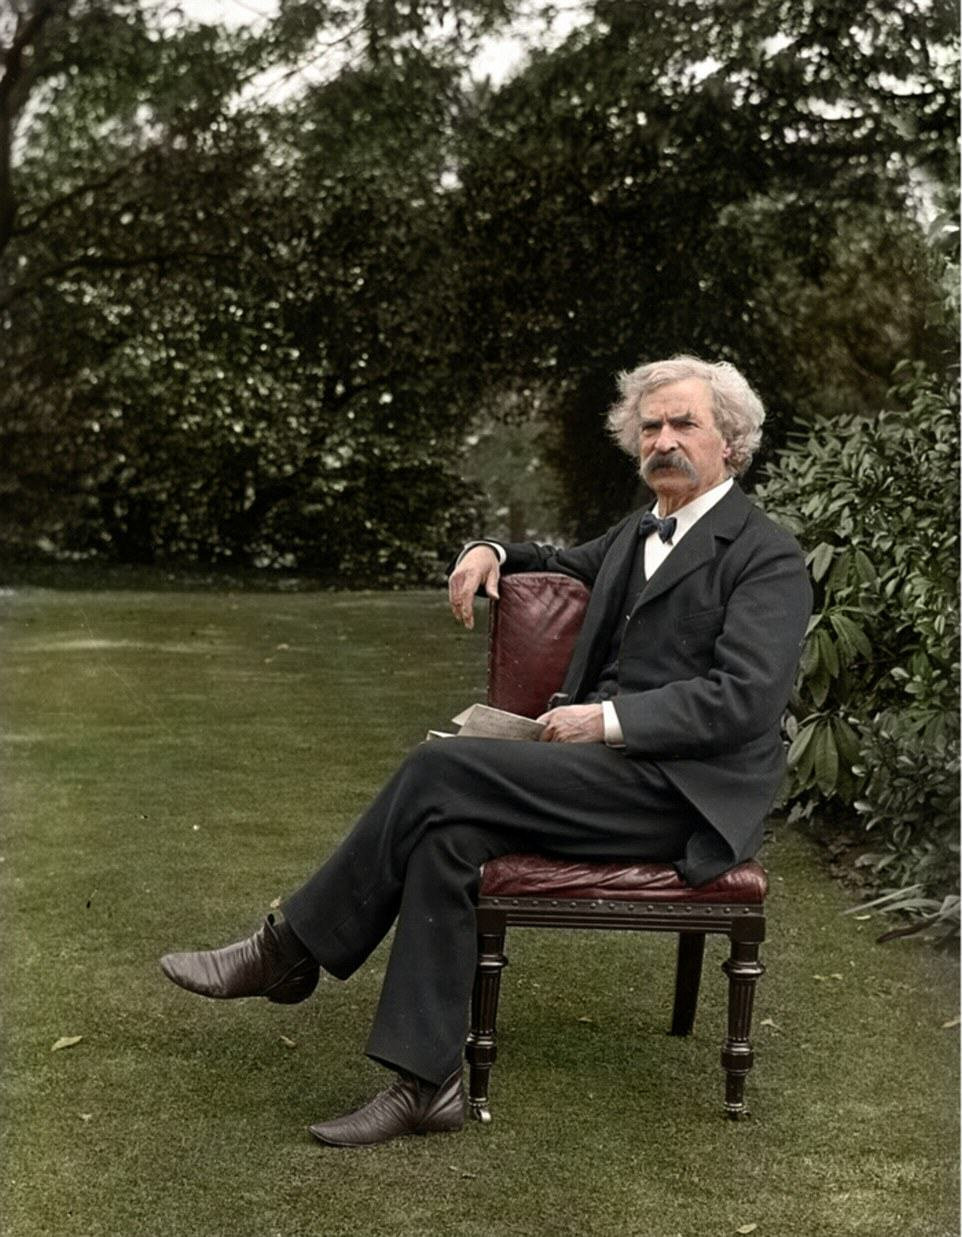 UNILAD colour photos 167 Some Of Historys Most Iconic Photos Have Been Transformed From Black And White To Colour